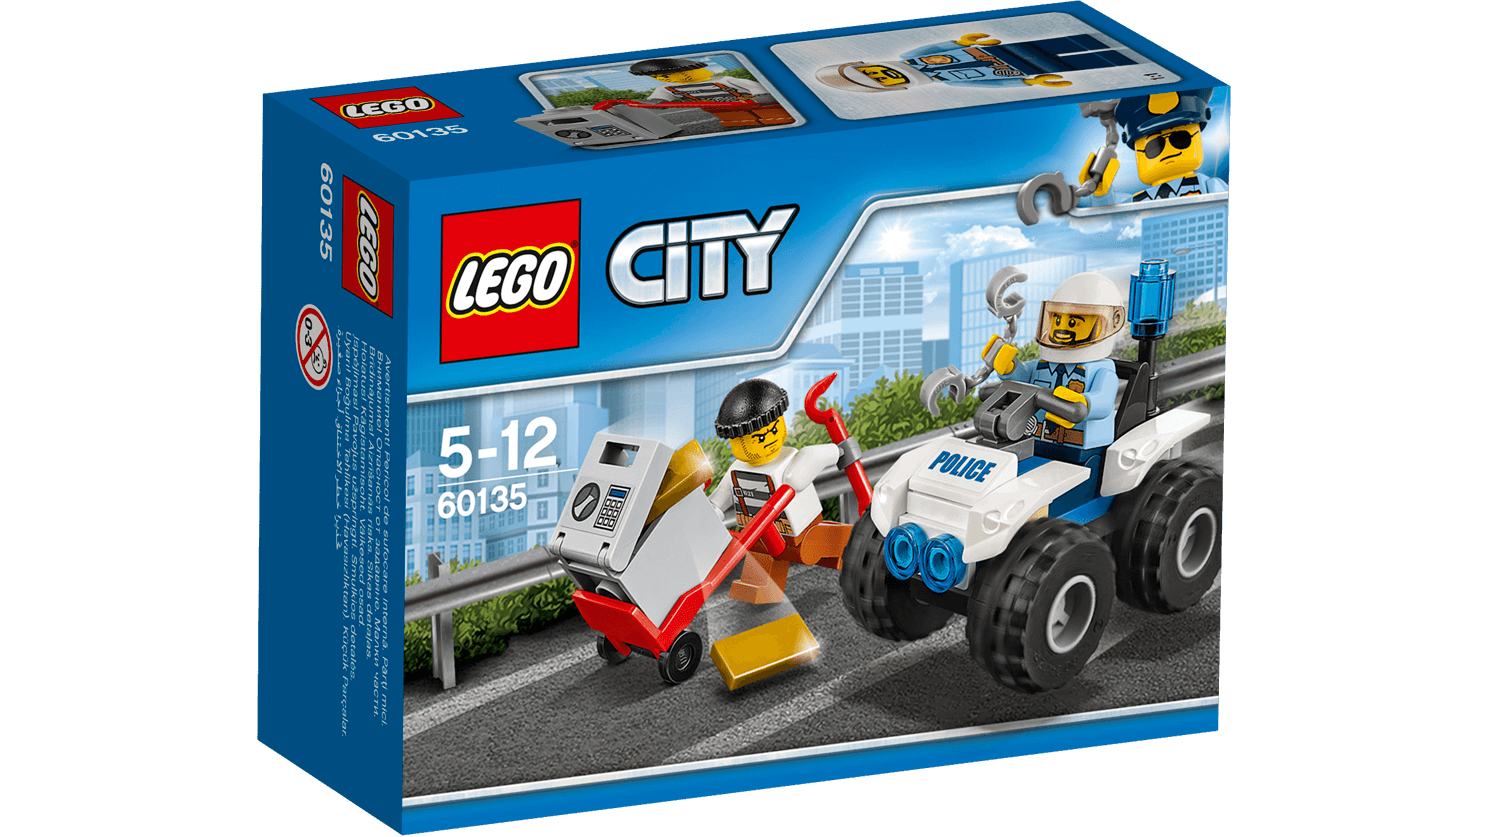 Pin lego 60032 city the lego summer wave in official images on - Afbeeldingsresultaat Voor Lego 60135 7jr